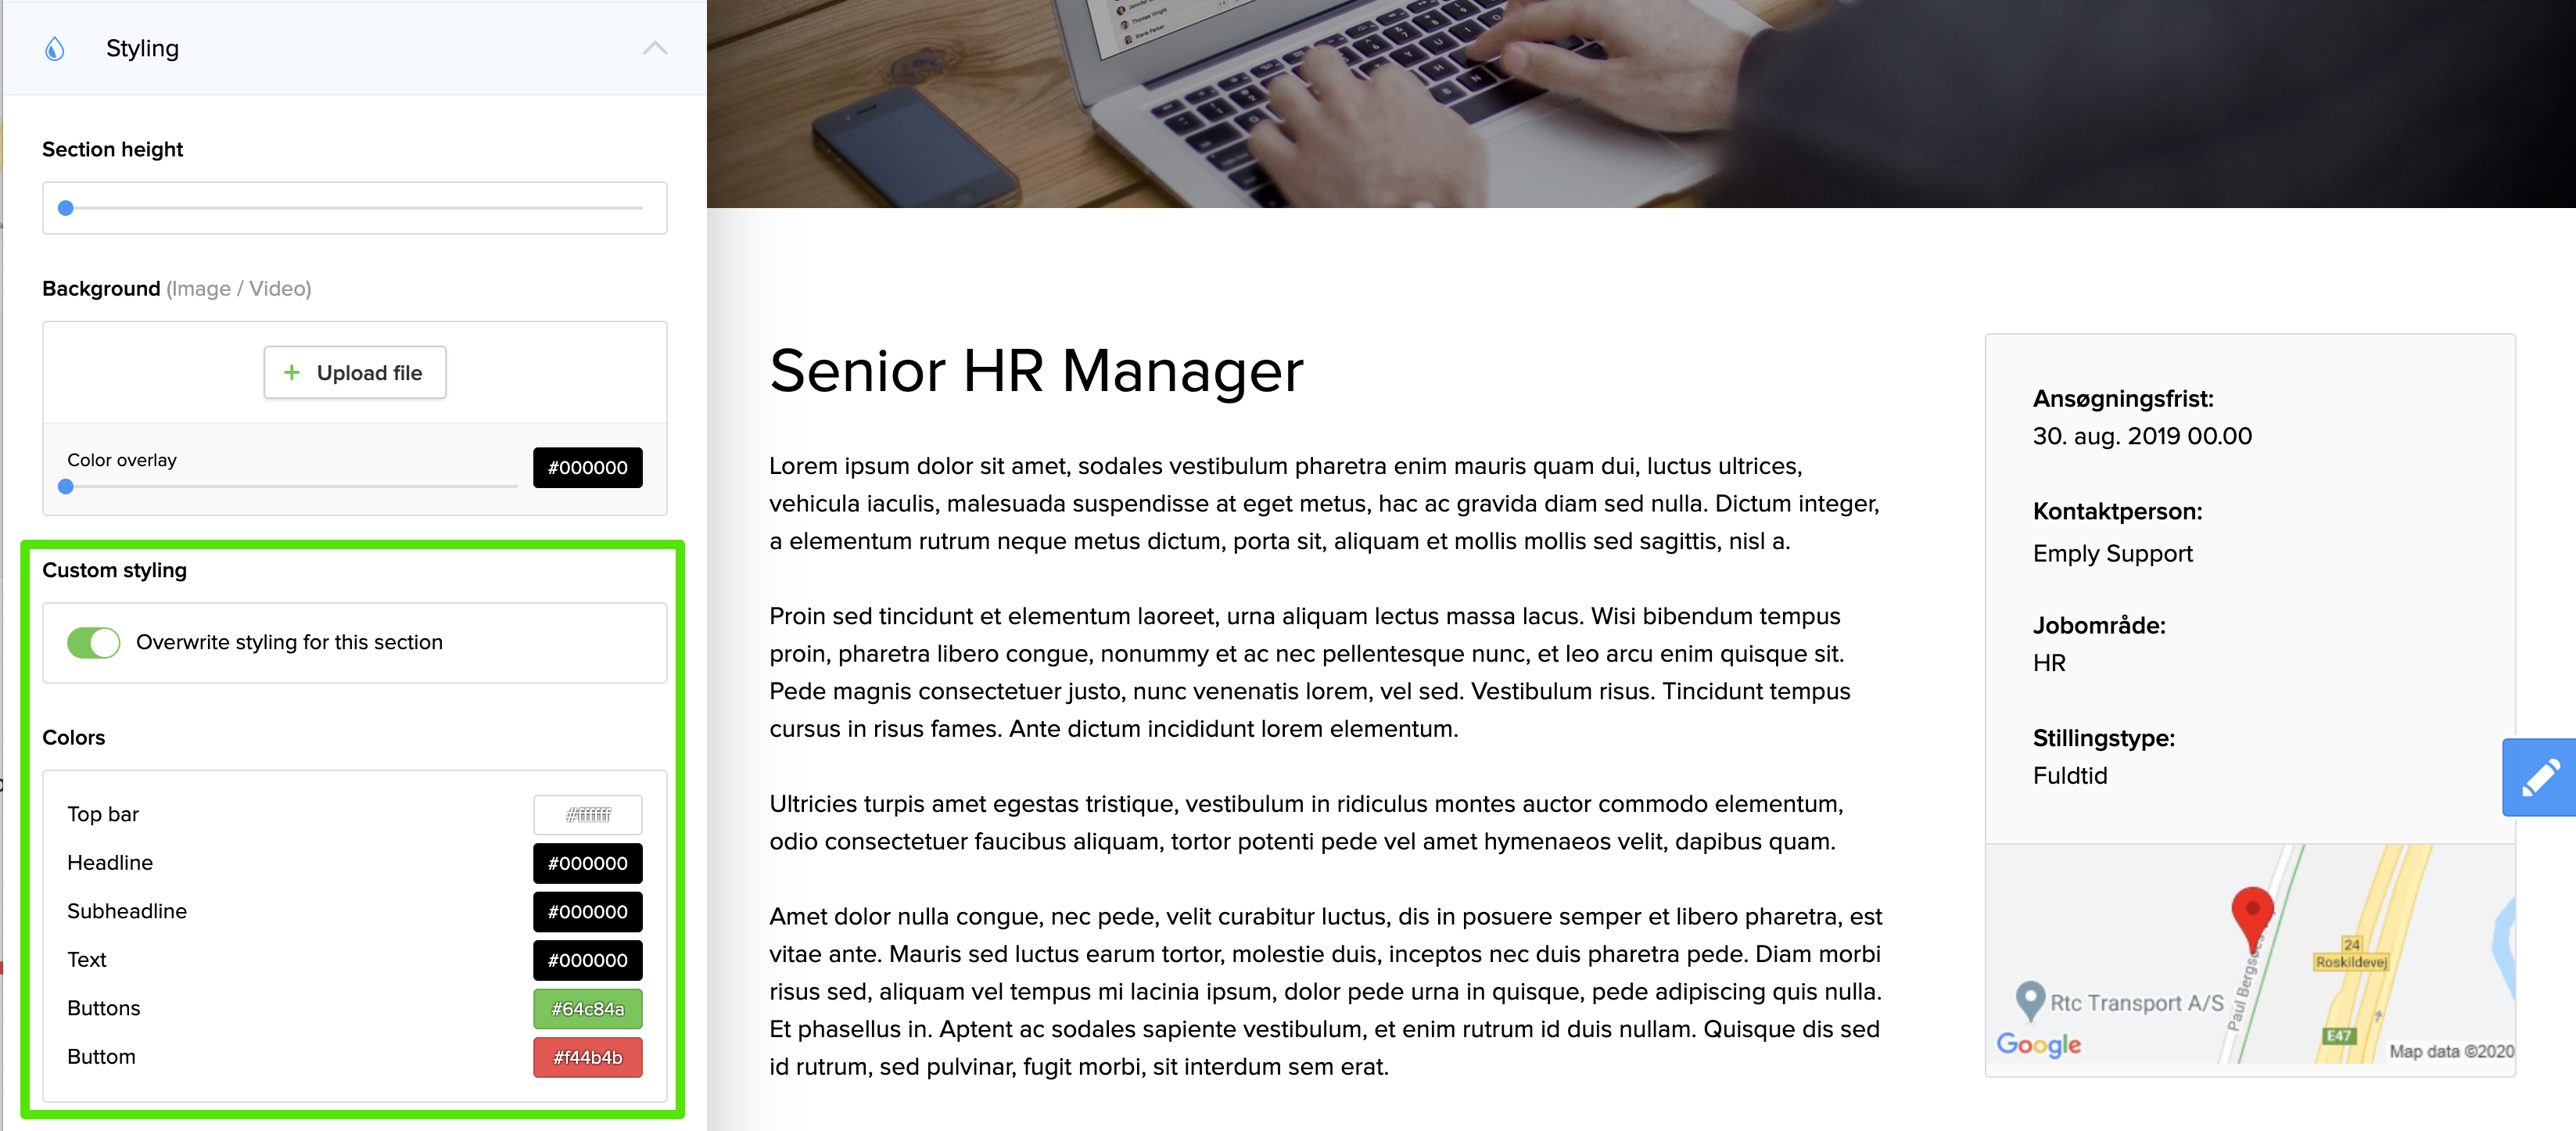 Senior_HR_Manager_2020-07-20_15-59-29.png